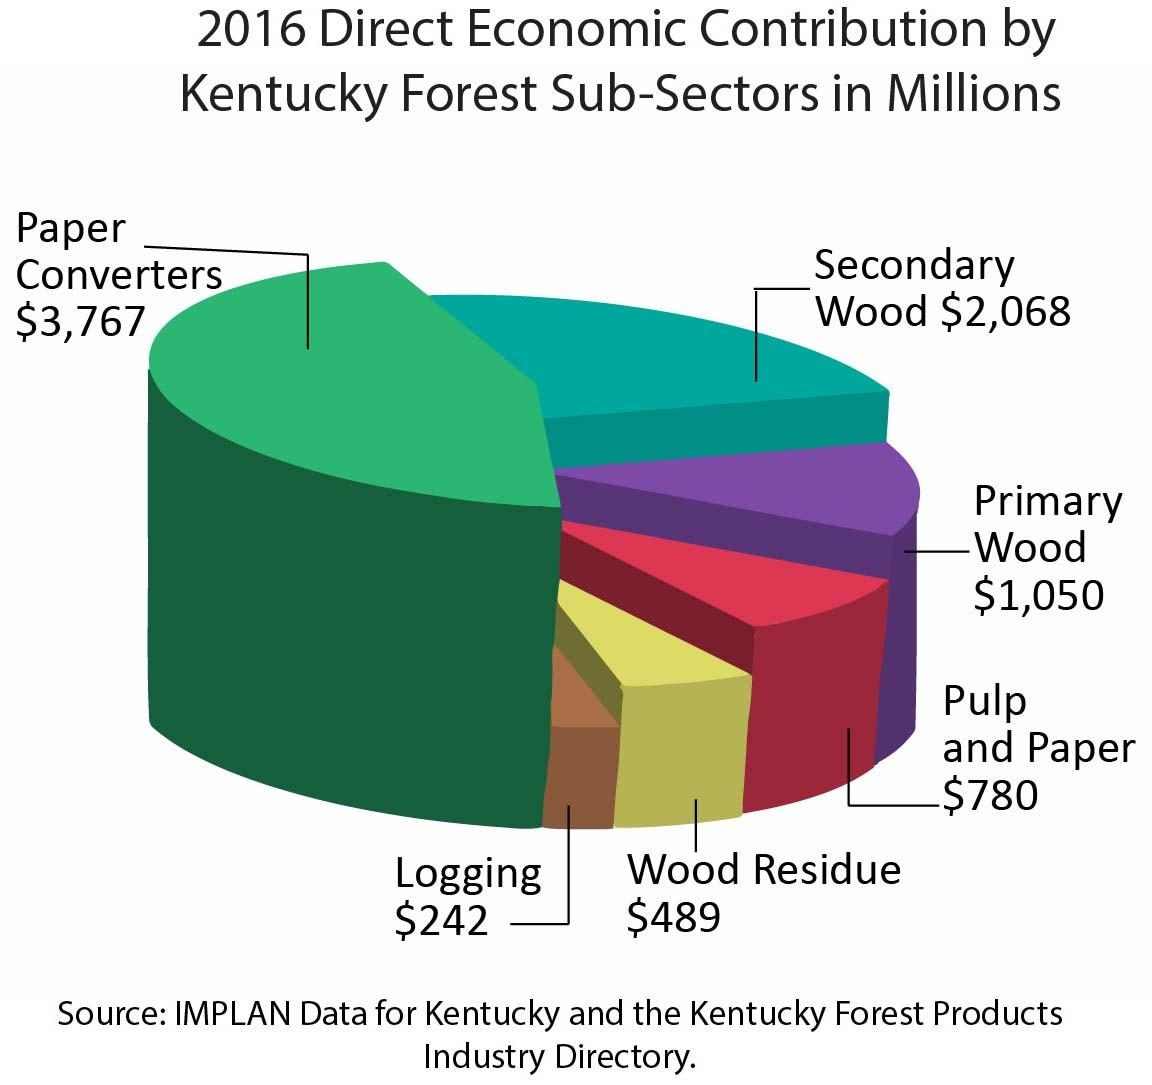 Direct Economic Contribution by KY Forest Sub-sectors in Millions